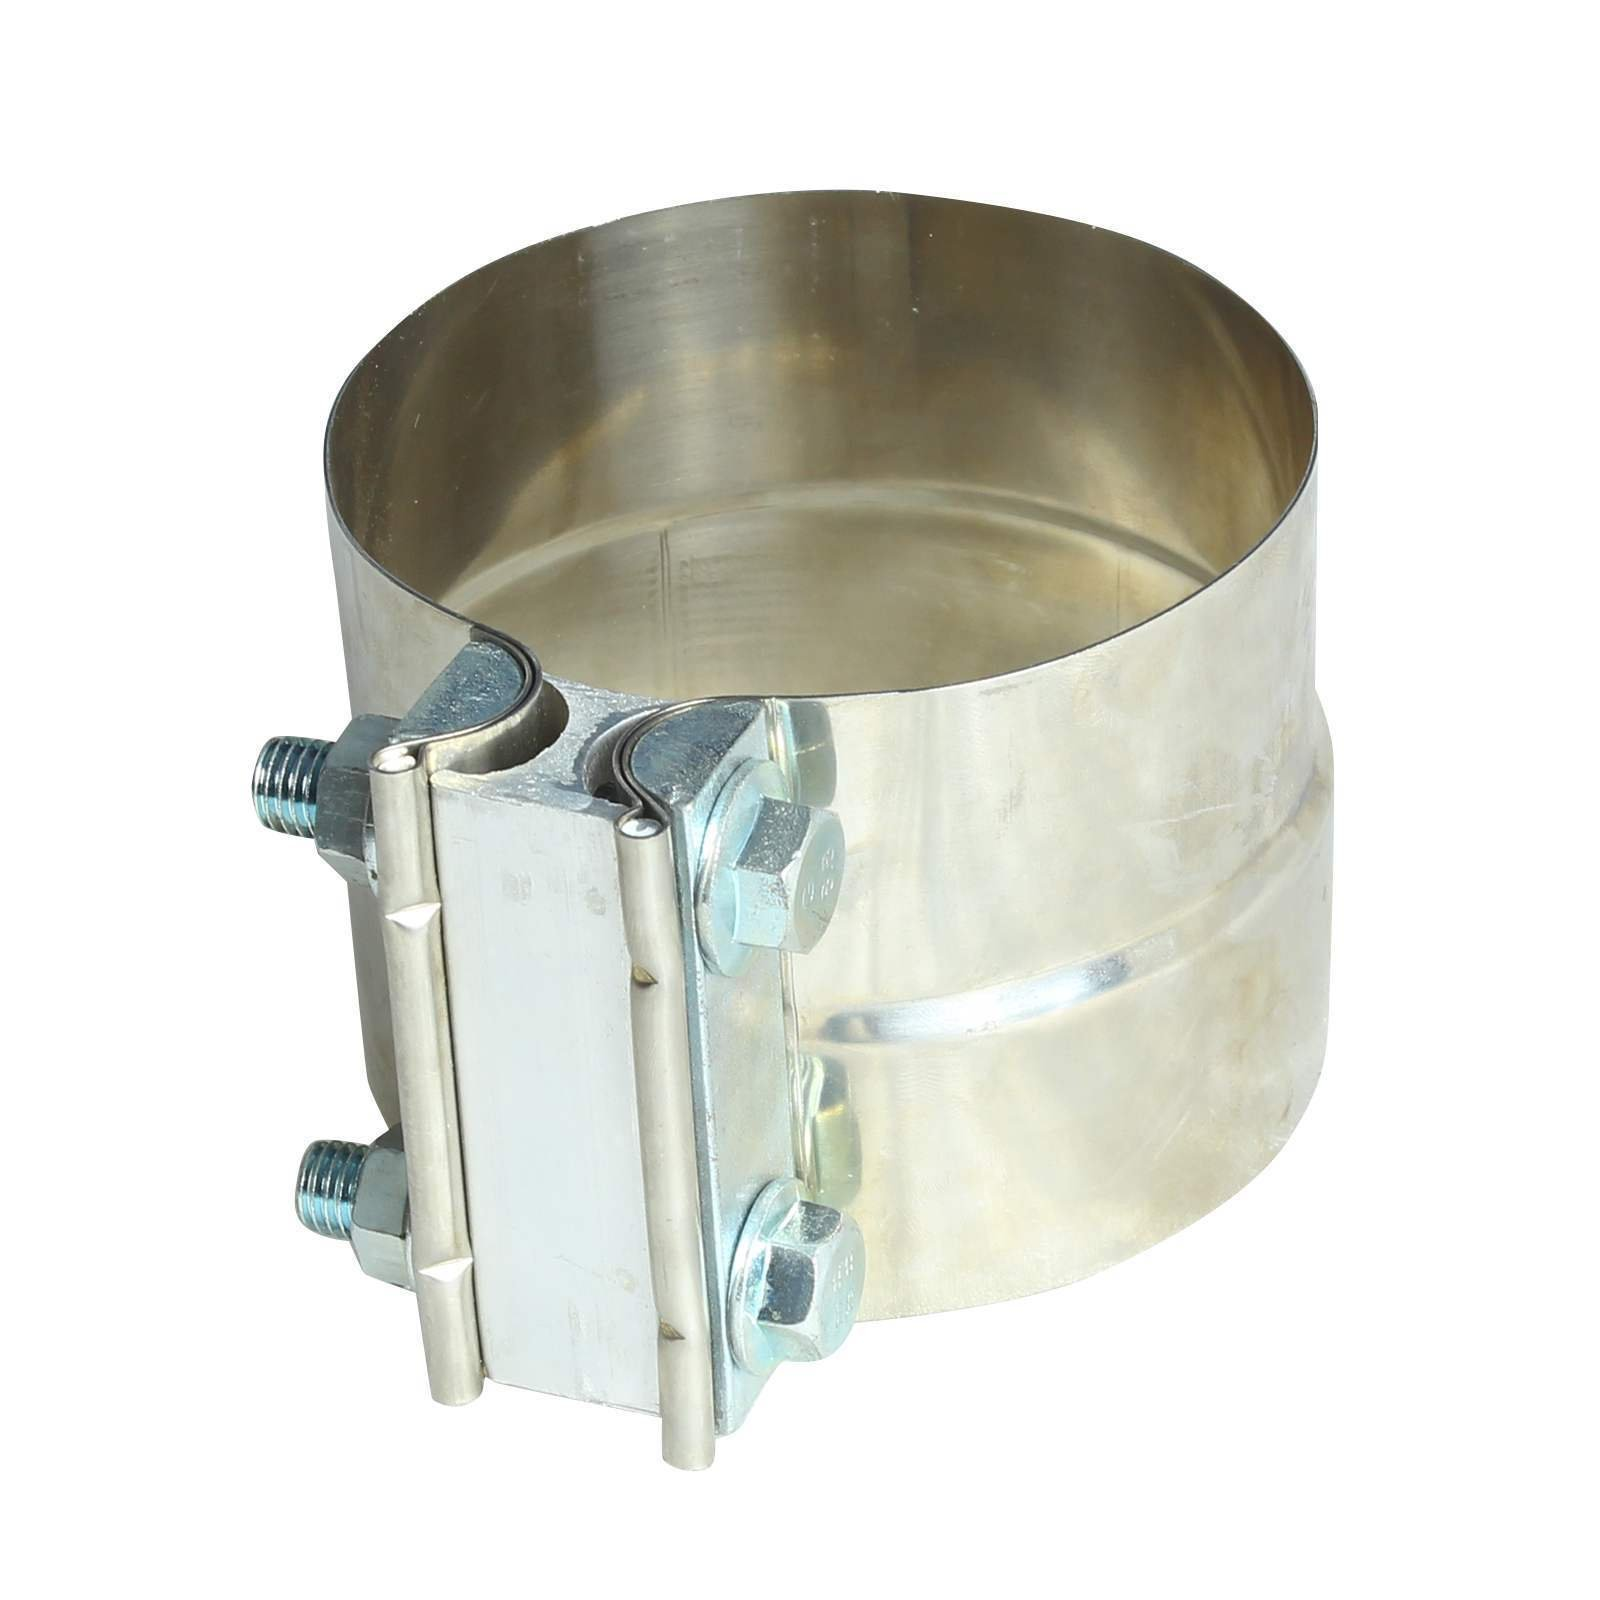 Cheap Lap Joint Band Clamp Find Deals On Line 33976 Fuel Filter 3 Stainless Steel Exhaust For Catback Muffler Downpipe